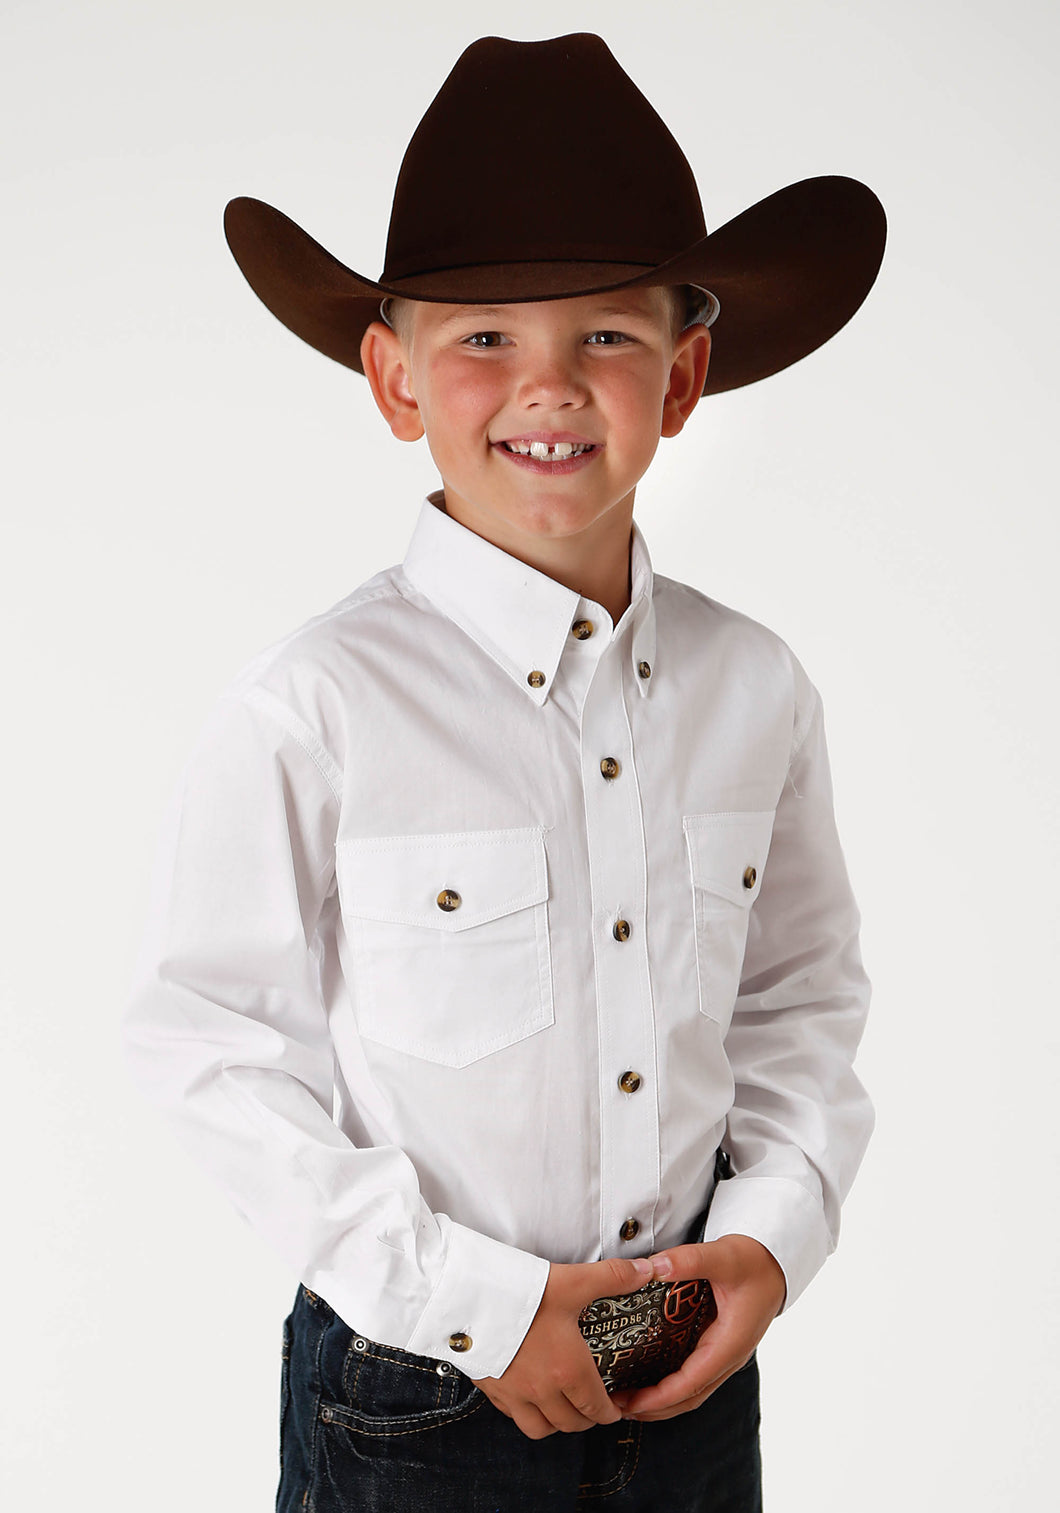 Solid Poplin Button Collection Basicsolid Boys Long Sleeve Shirt Solid Poplin Western Model Vergtd Butn